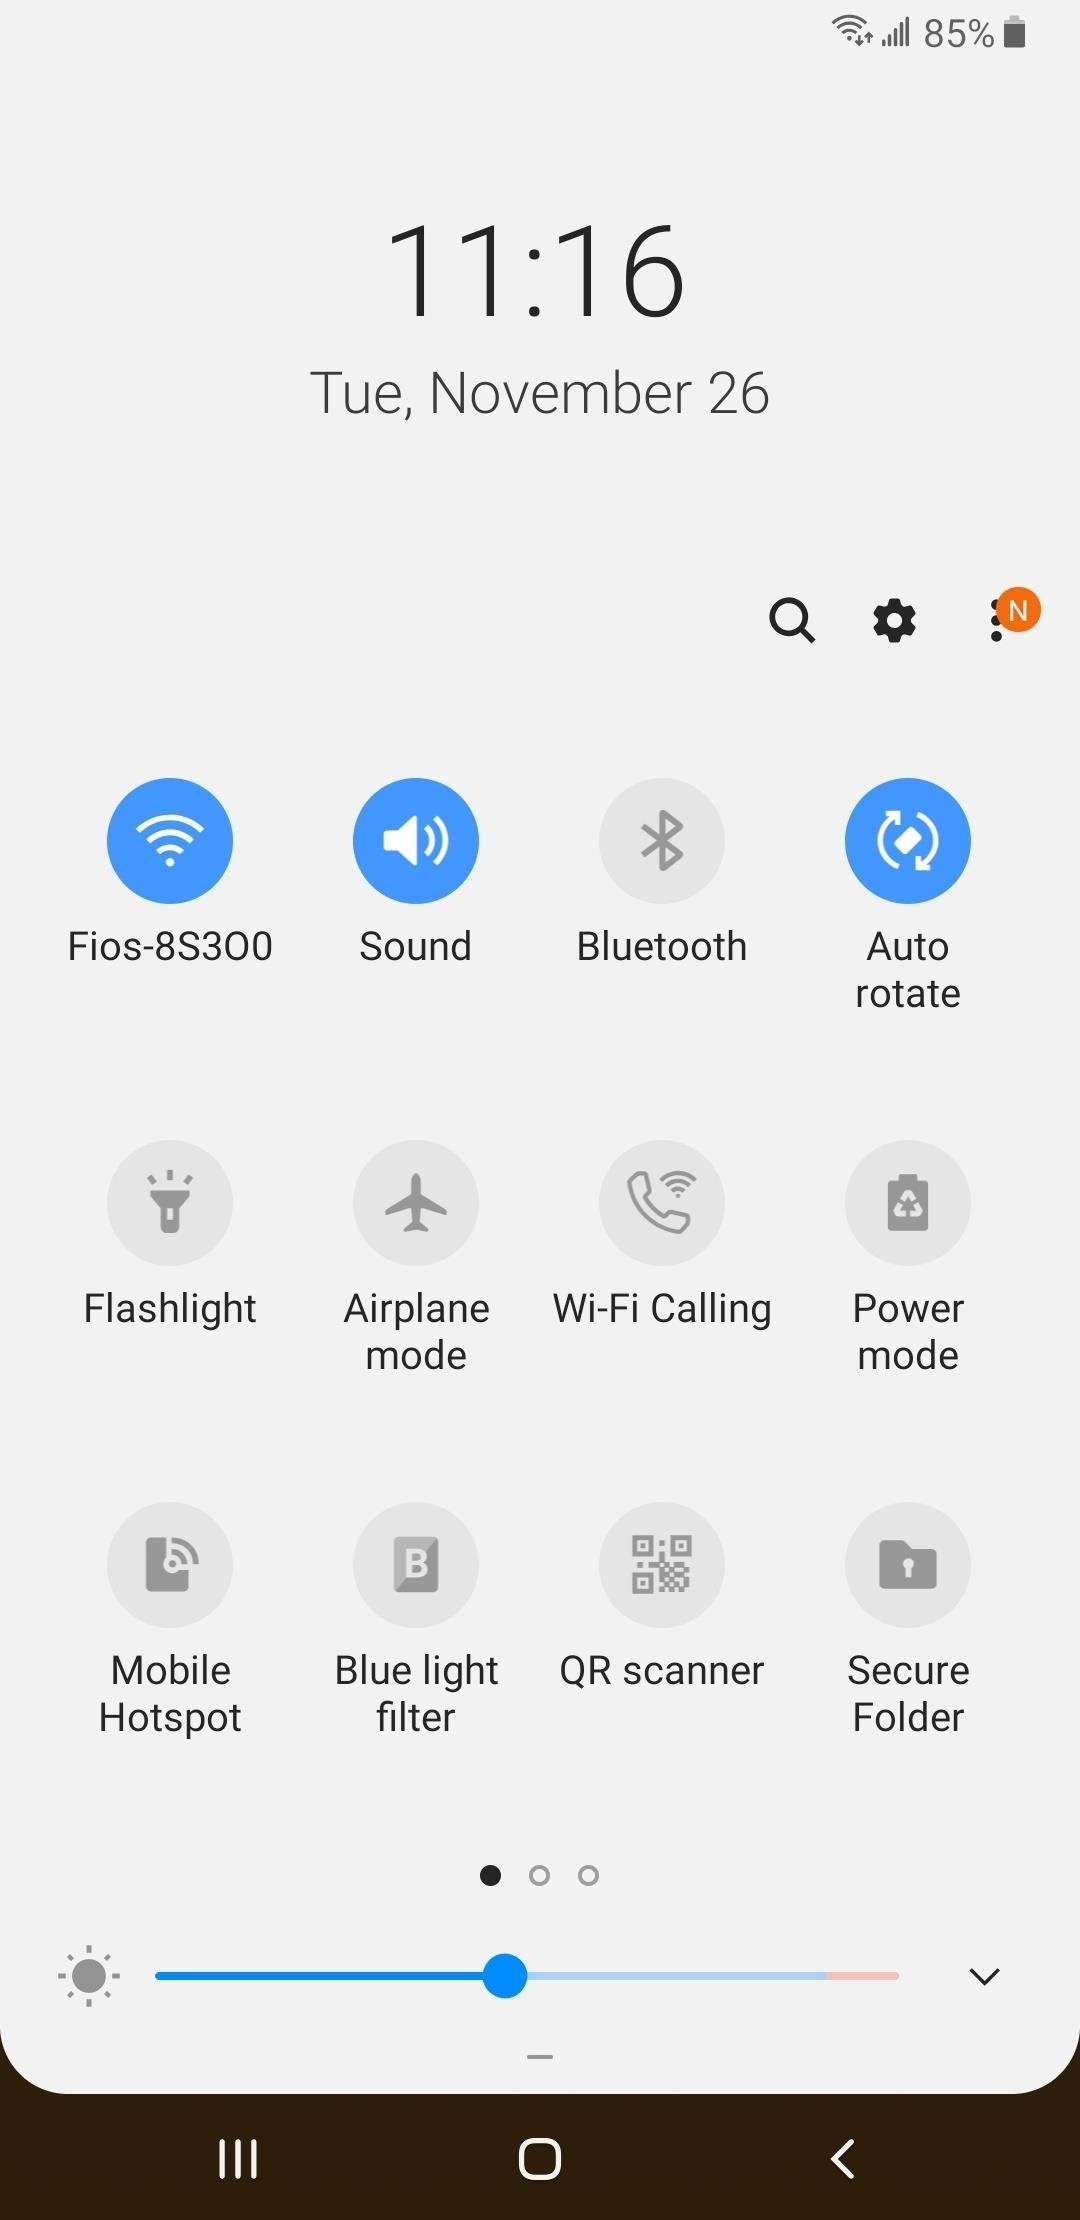 All new features and changes in Samsung's One UI 2 for Galaxy devices